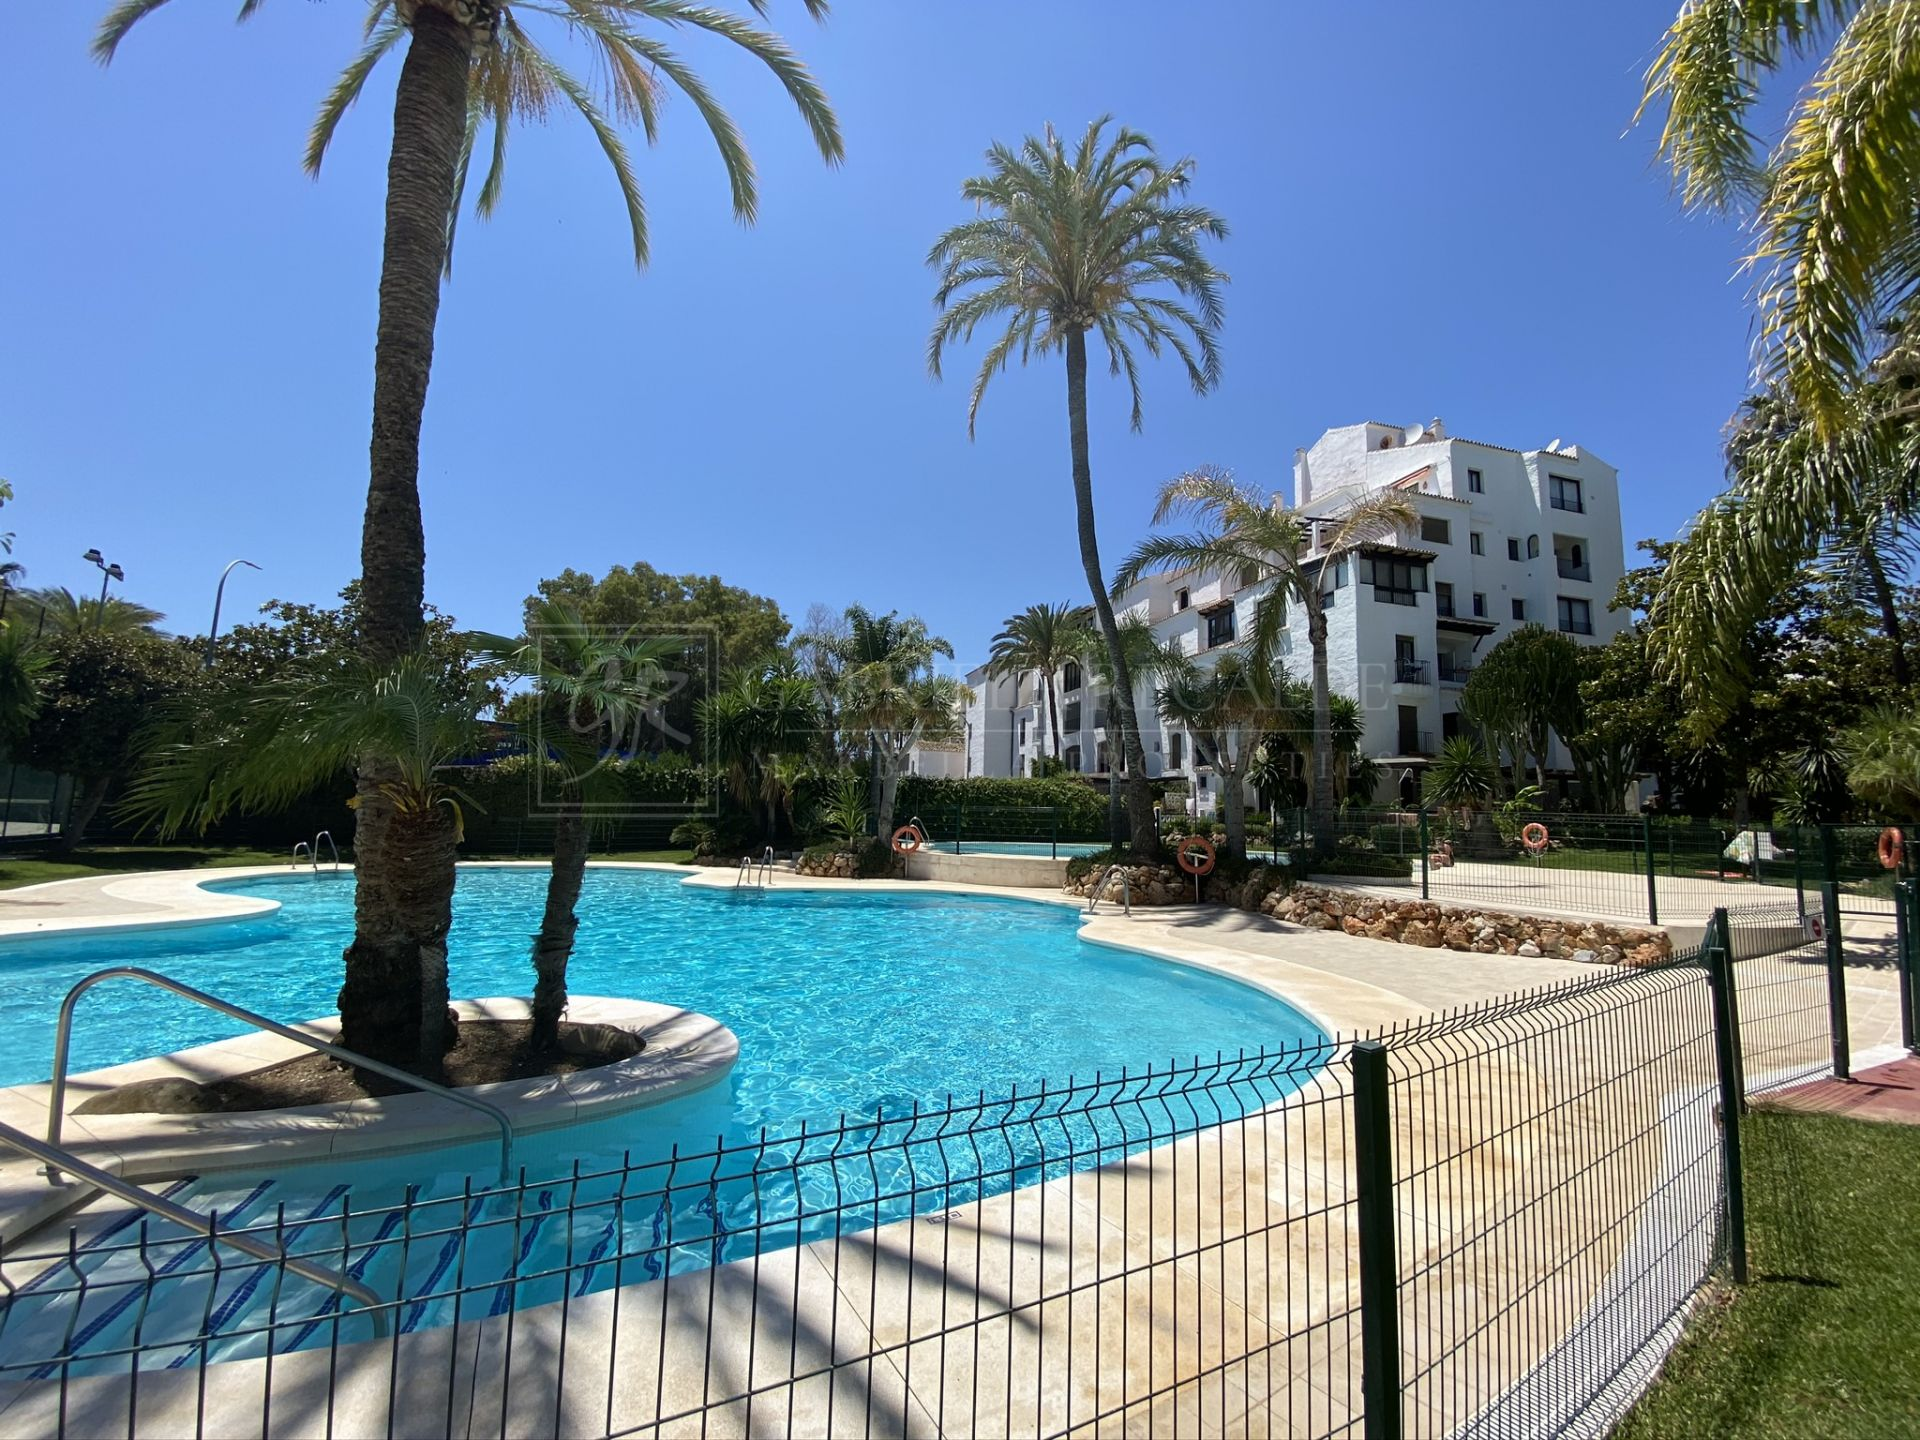 Apartment in the heart of Puerto Banus short walk to the port and the beach